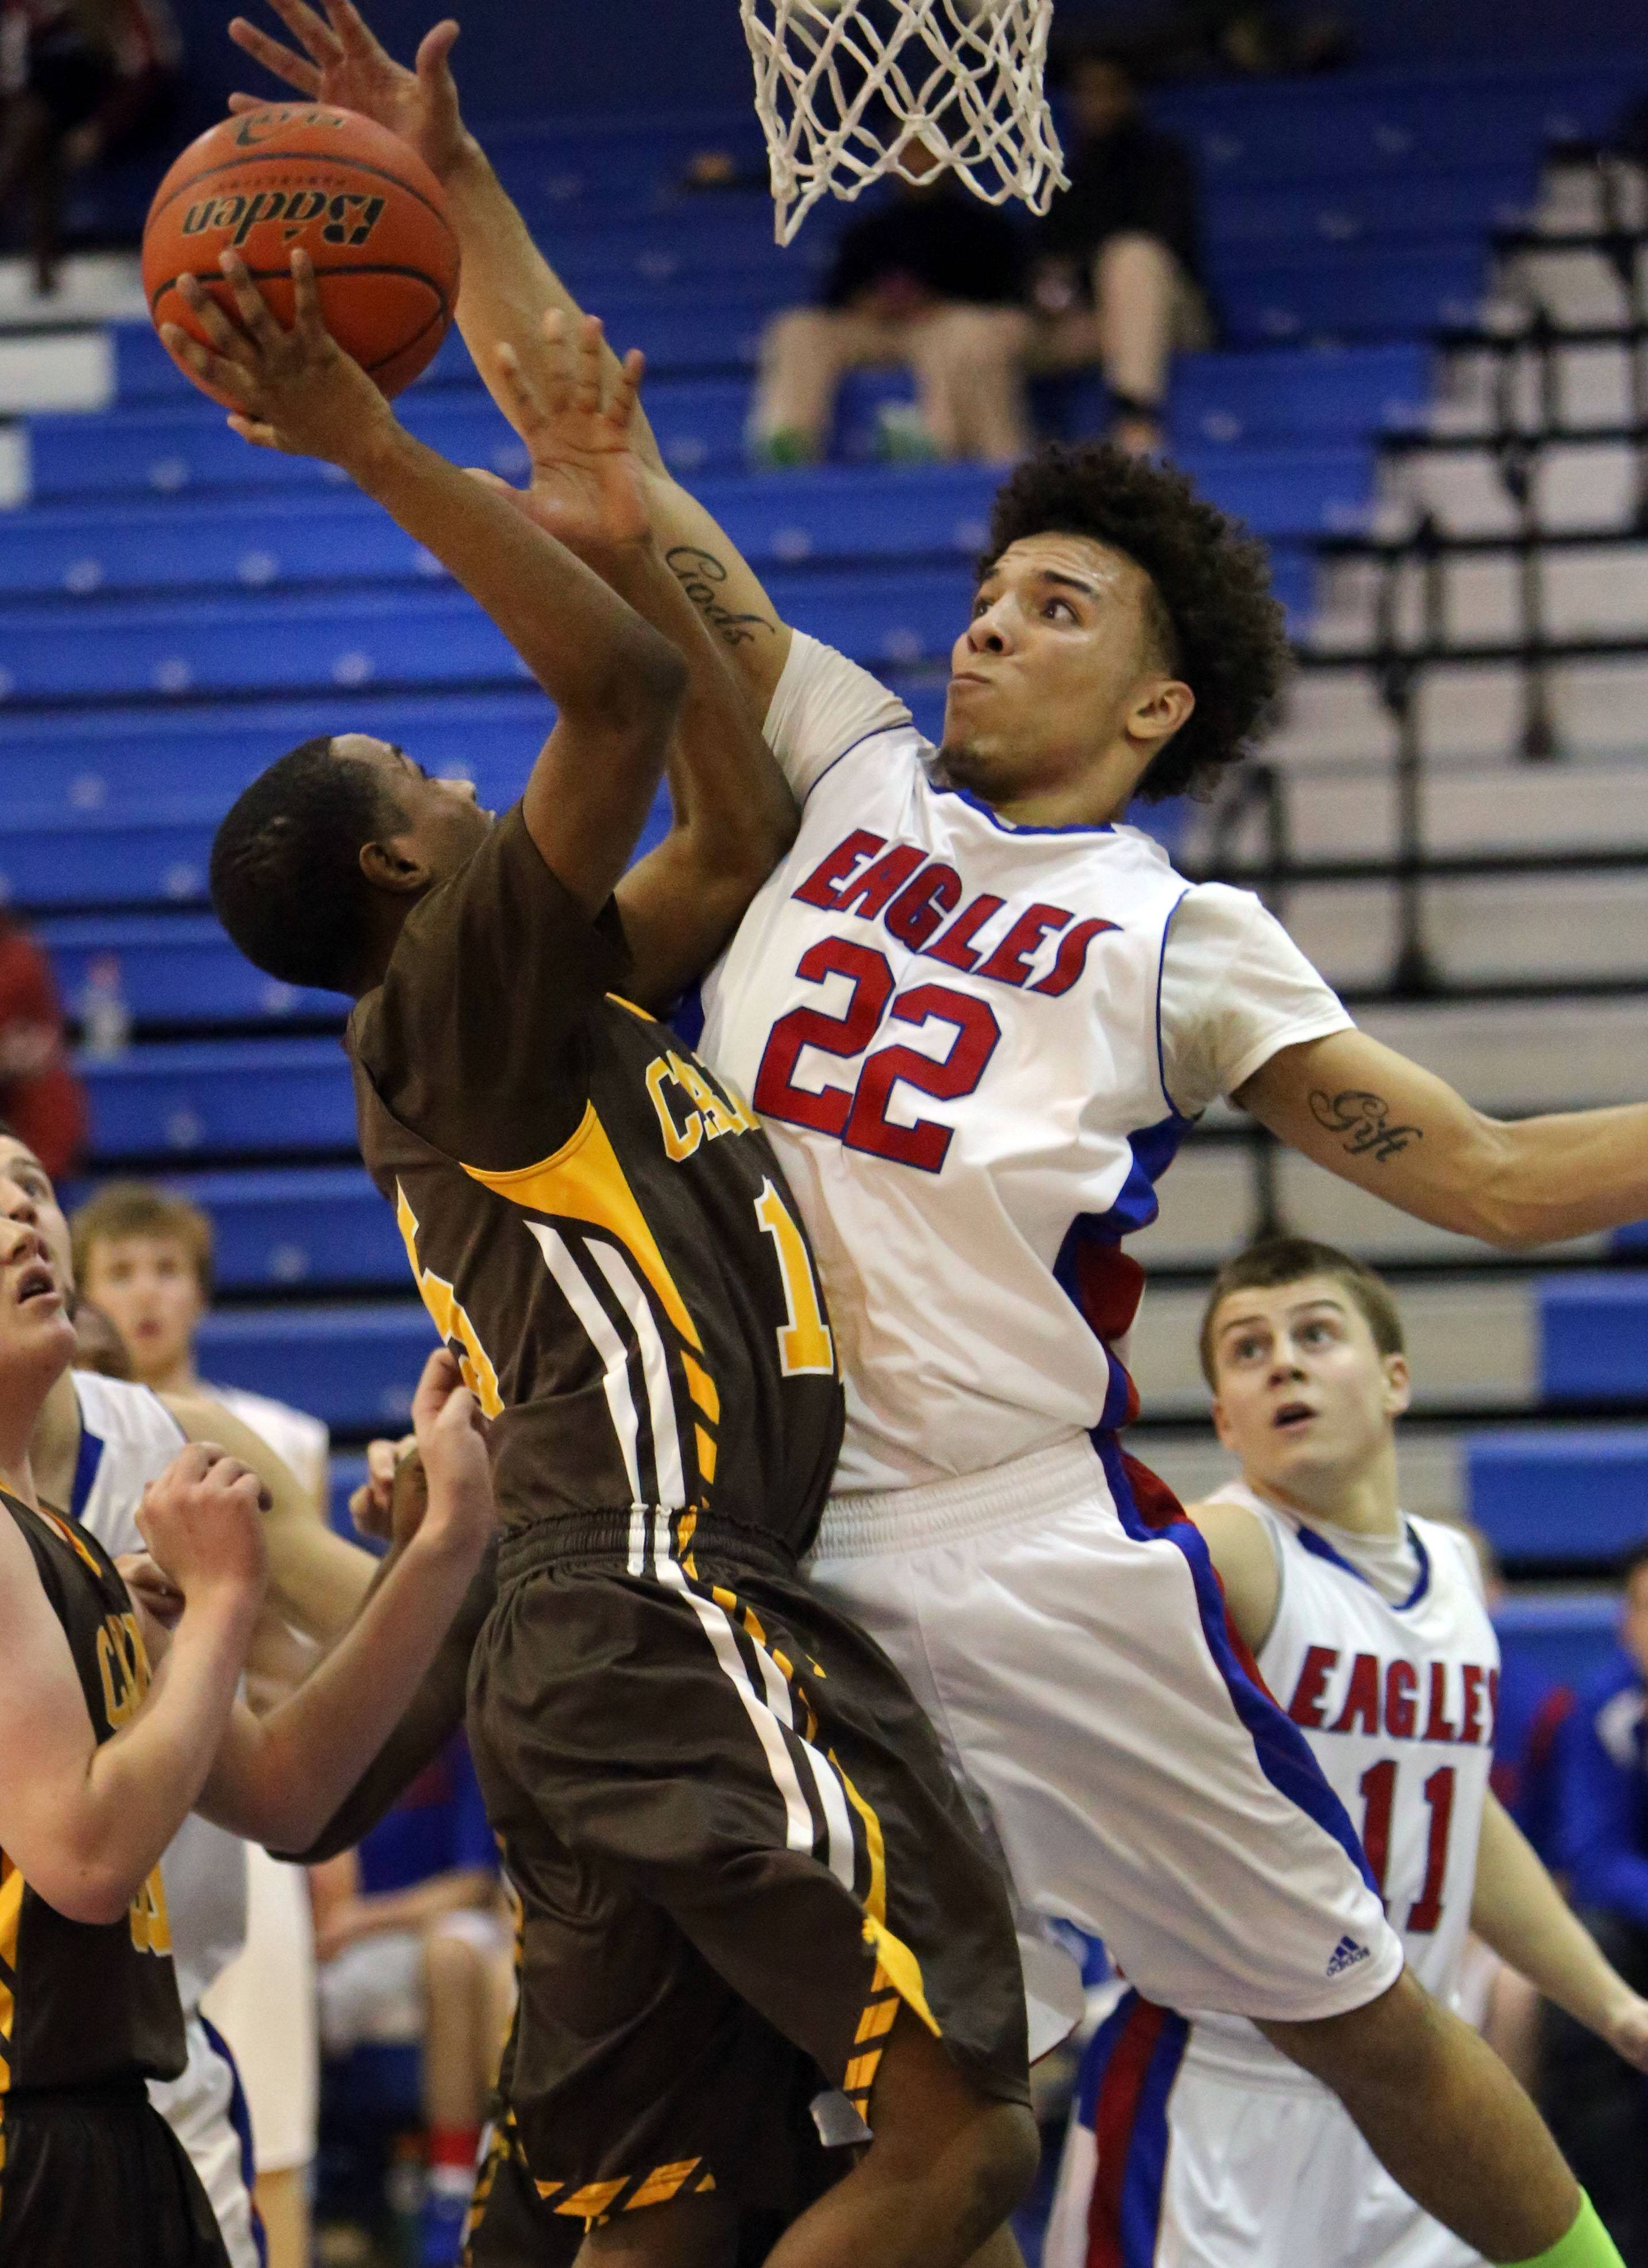 Lakes' Tramone Hudson, right blocks the shot of Carmel's Shareif Besler-Bailey.